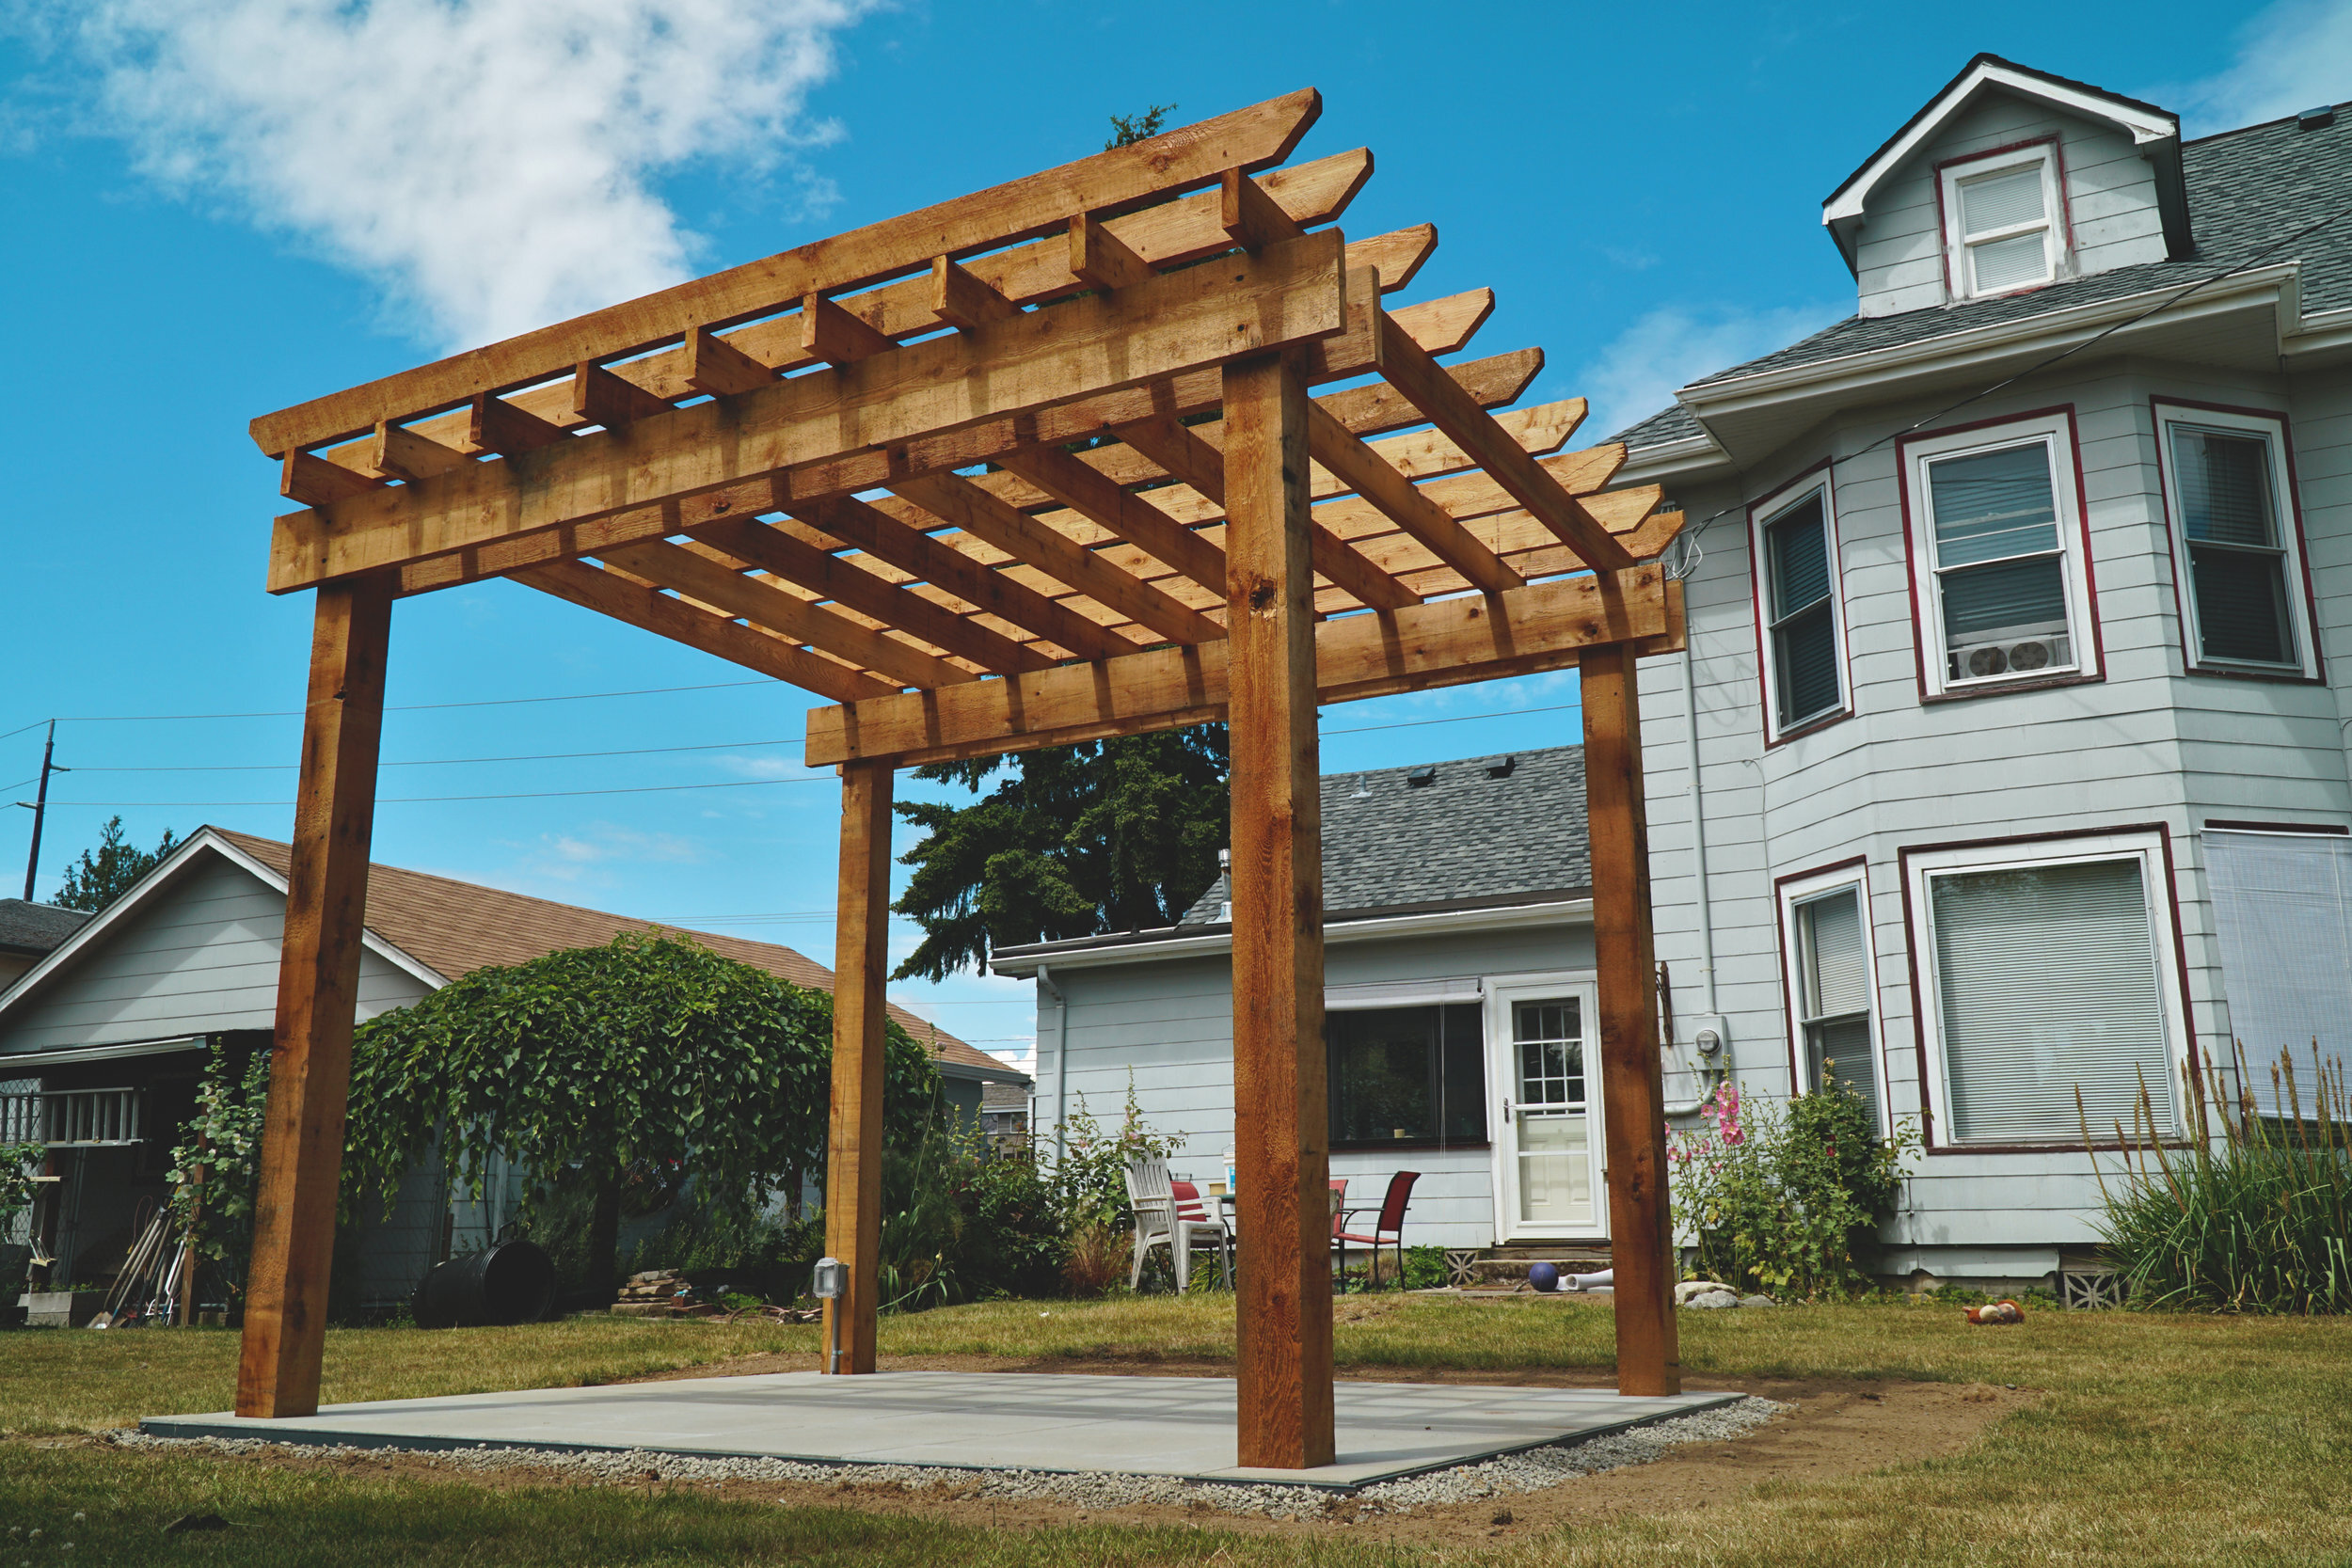 Outdoor power outlet added to pergola by The Tacoma Electrician